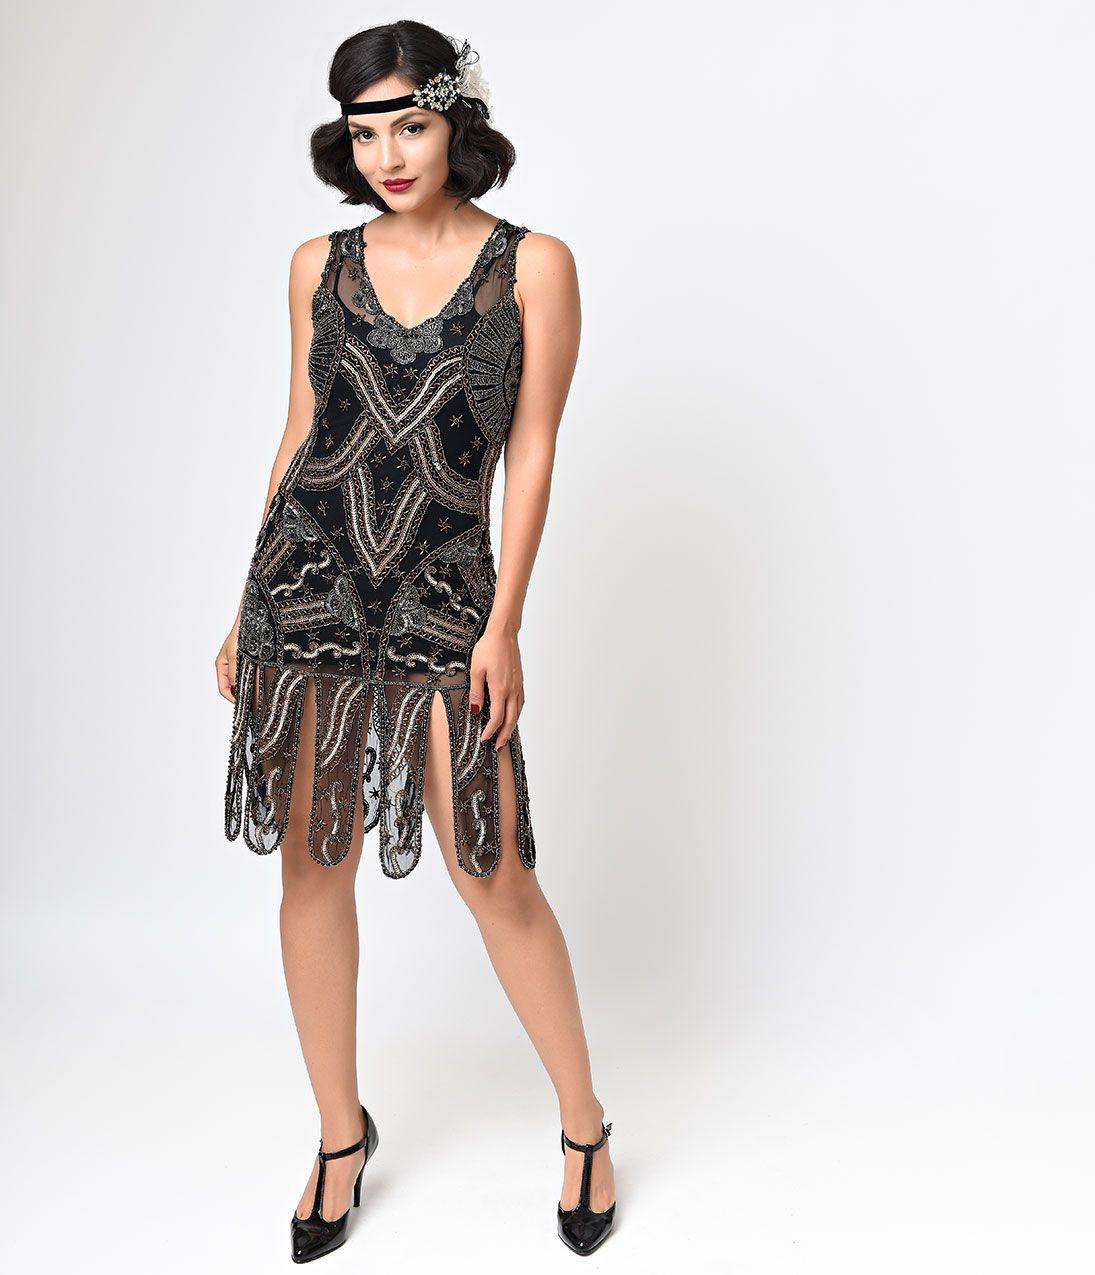 1920 style cocktail dress